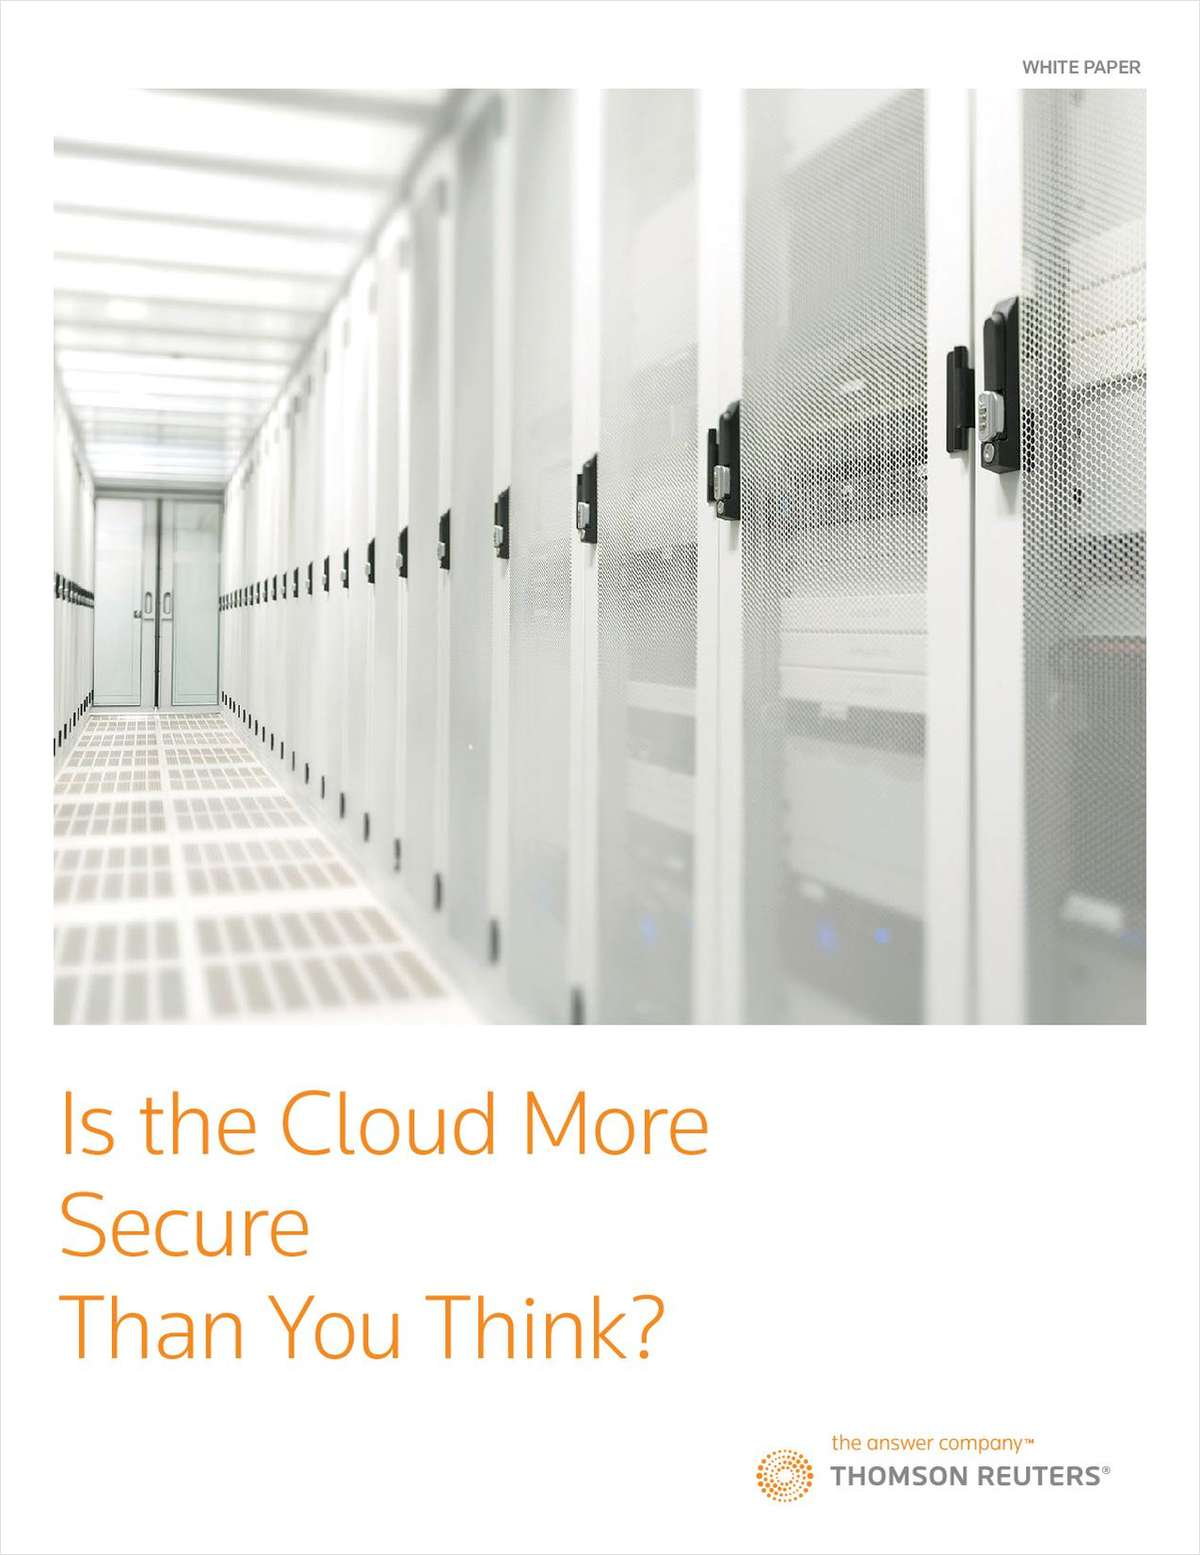 Is the Cloud More Secure Than You Think?